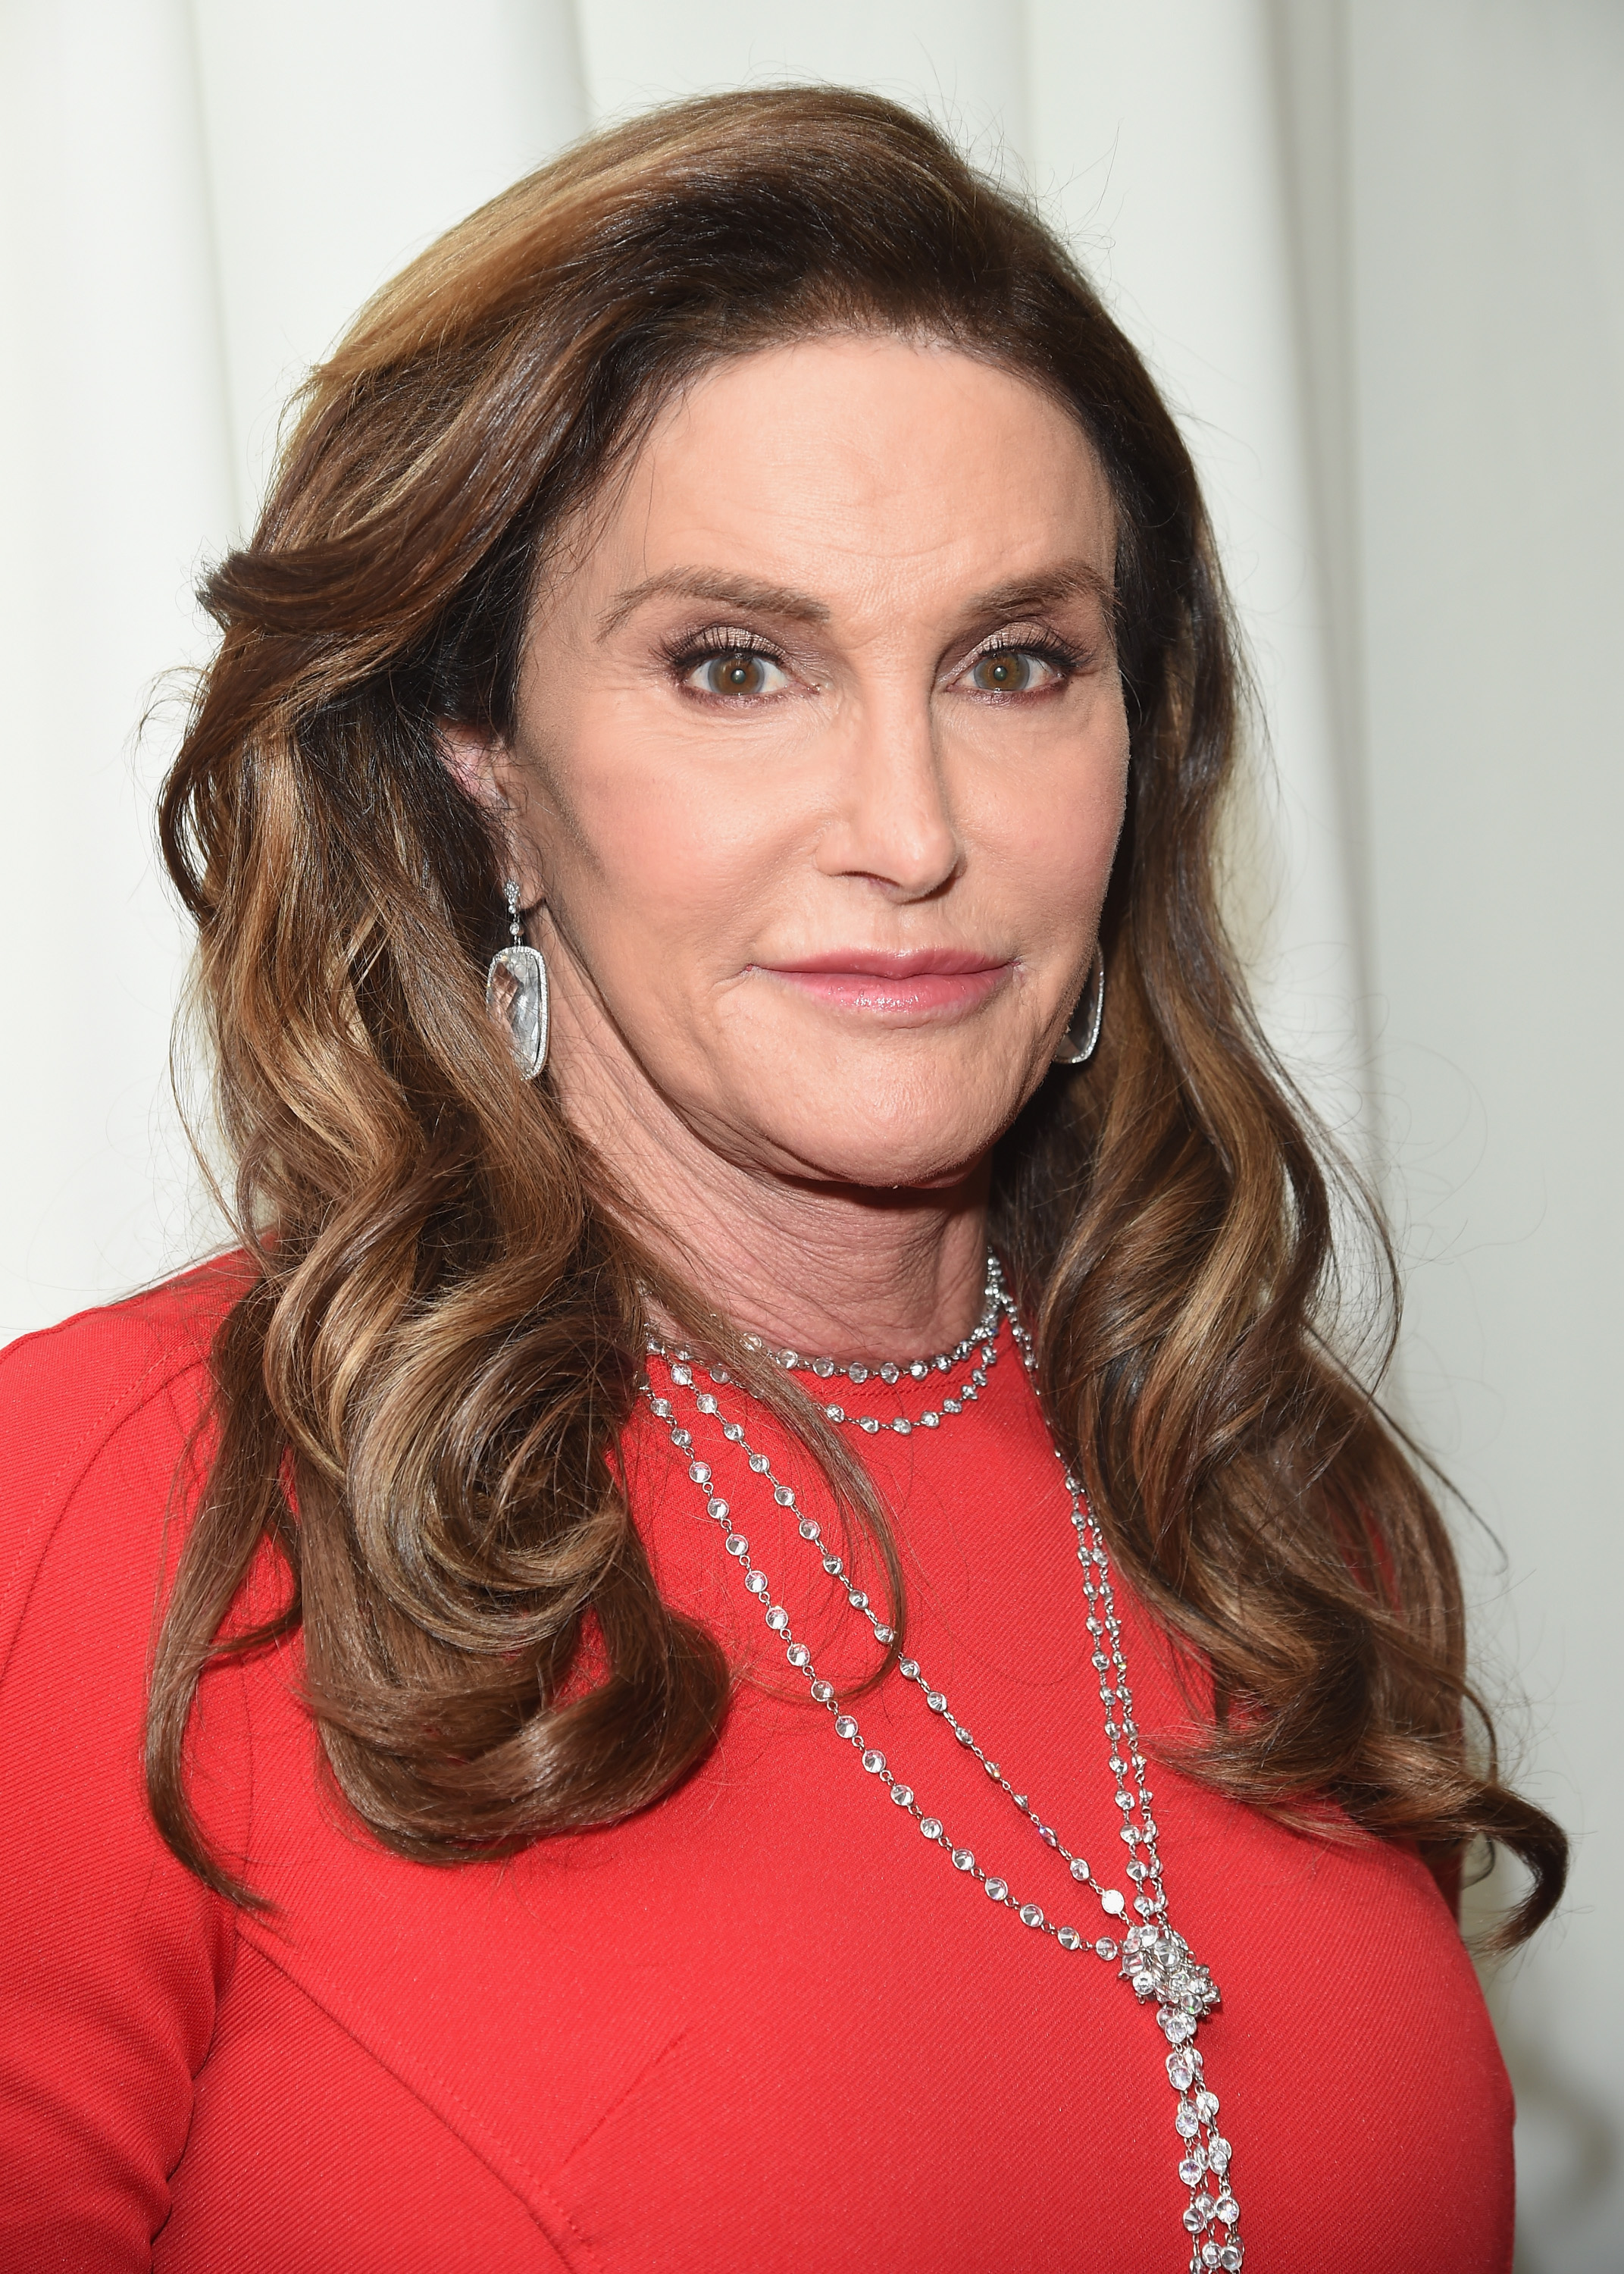 Caitlyn Jenner at the 24th Annual Elton John AIDS Foundation's Oscar Viewing Party in West Hollywood, Calif. on Feb. 28, 2016.